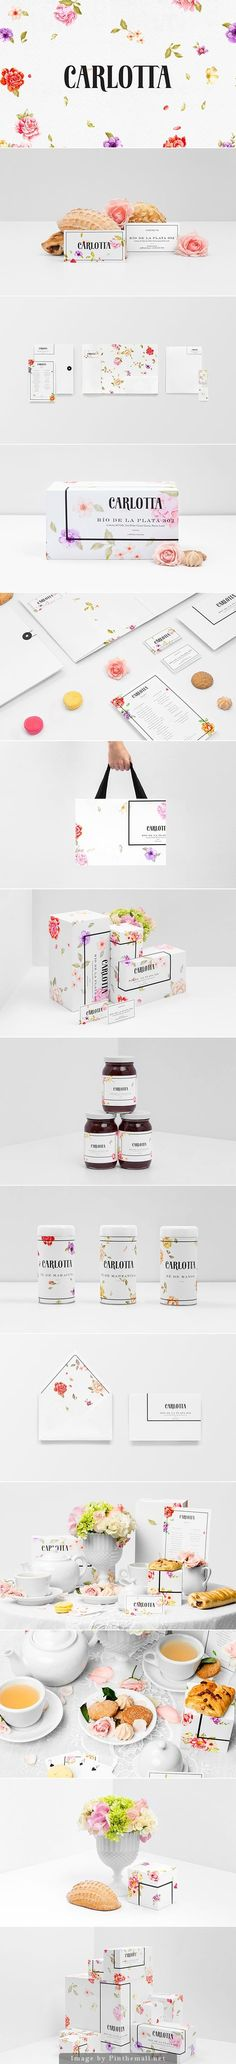 """You don't even have to like flowers to appreciate this beautiful Carlotta by Anagrama identity, packaging, branding curated by Packaging Diva PD created via <a href=""""https://www.behance.net/gallery/20653269/Carlotta"""" rel=""""nofollow"""" target=""""_blank"""">www.behance.net/...</a>"""